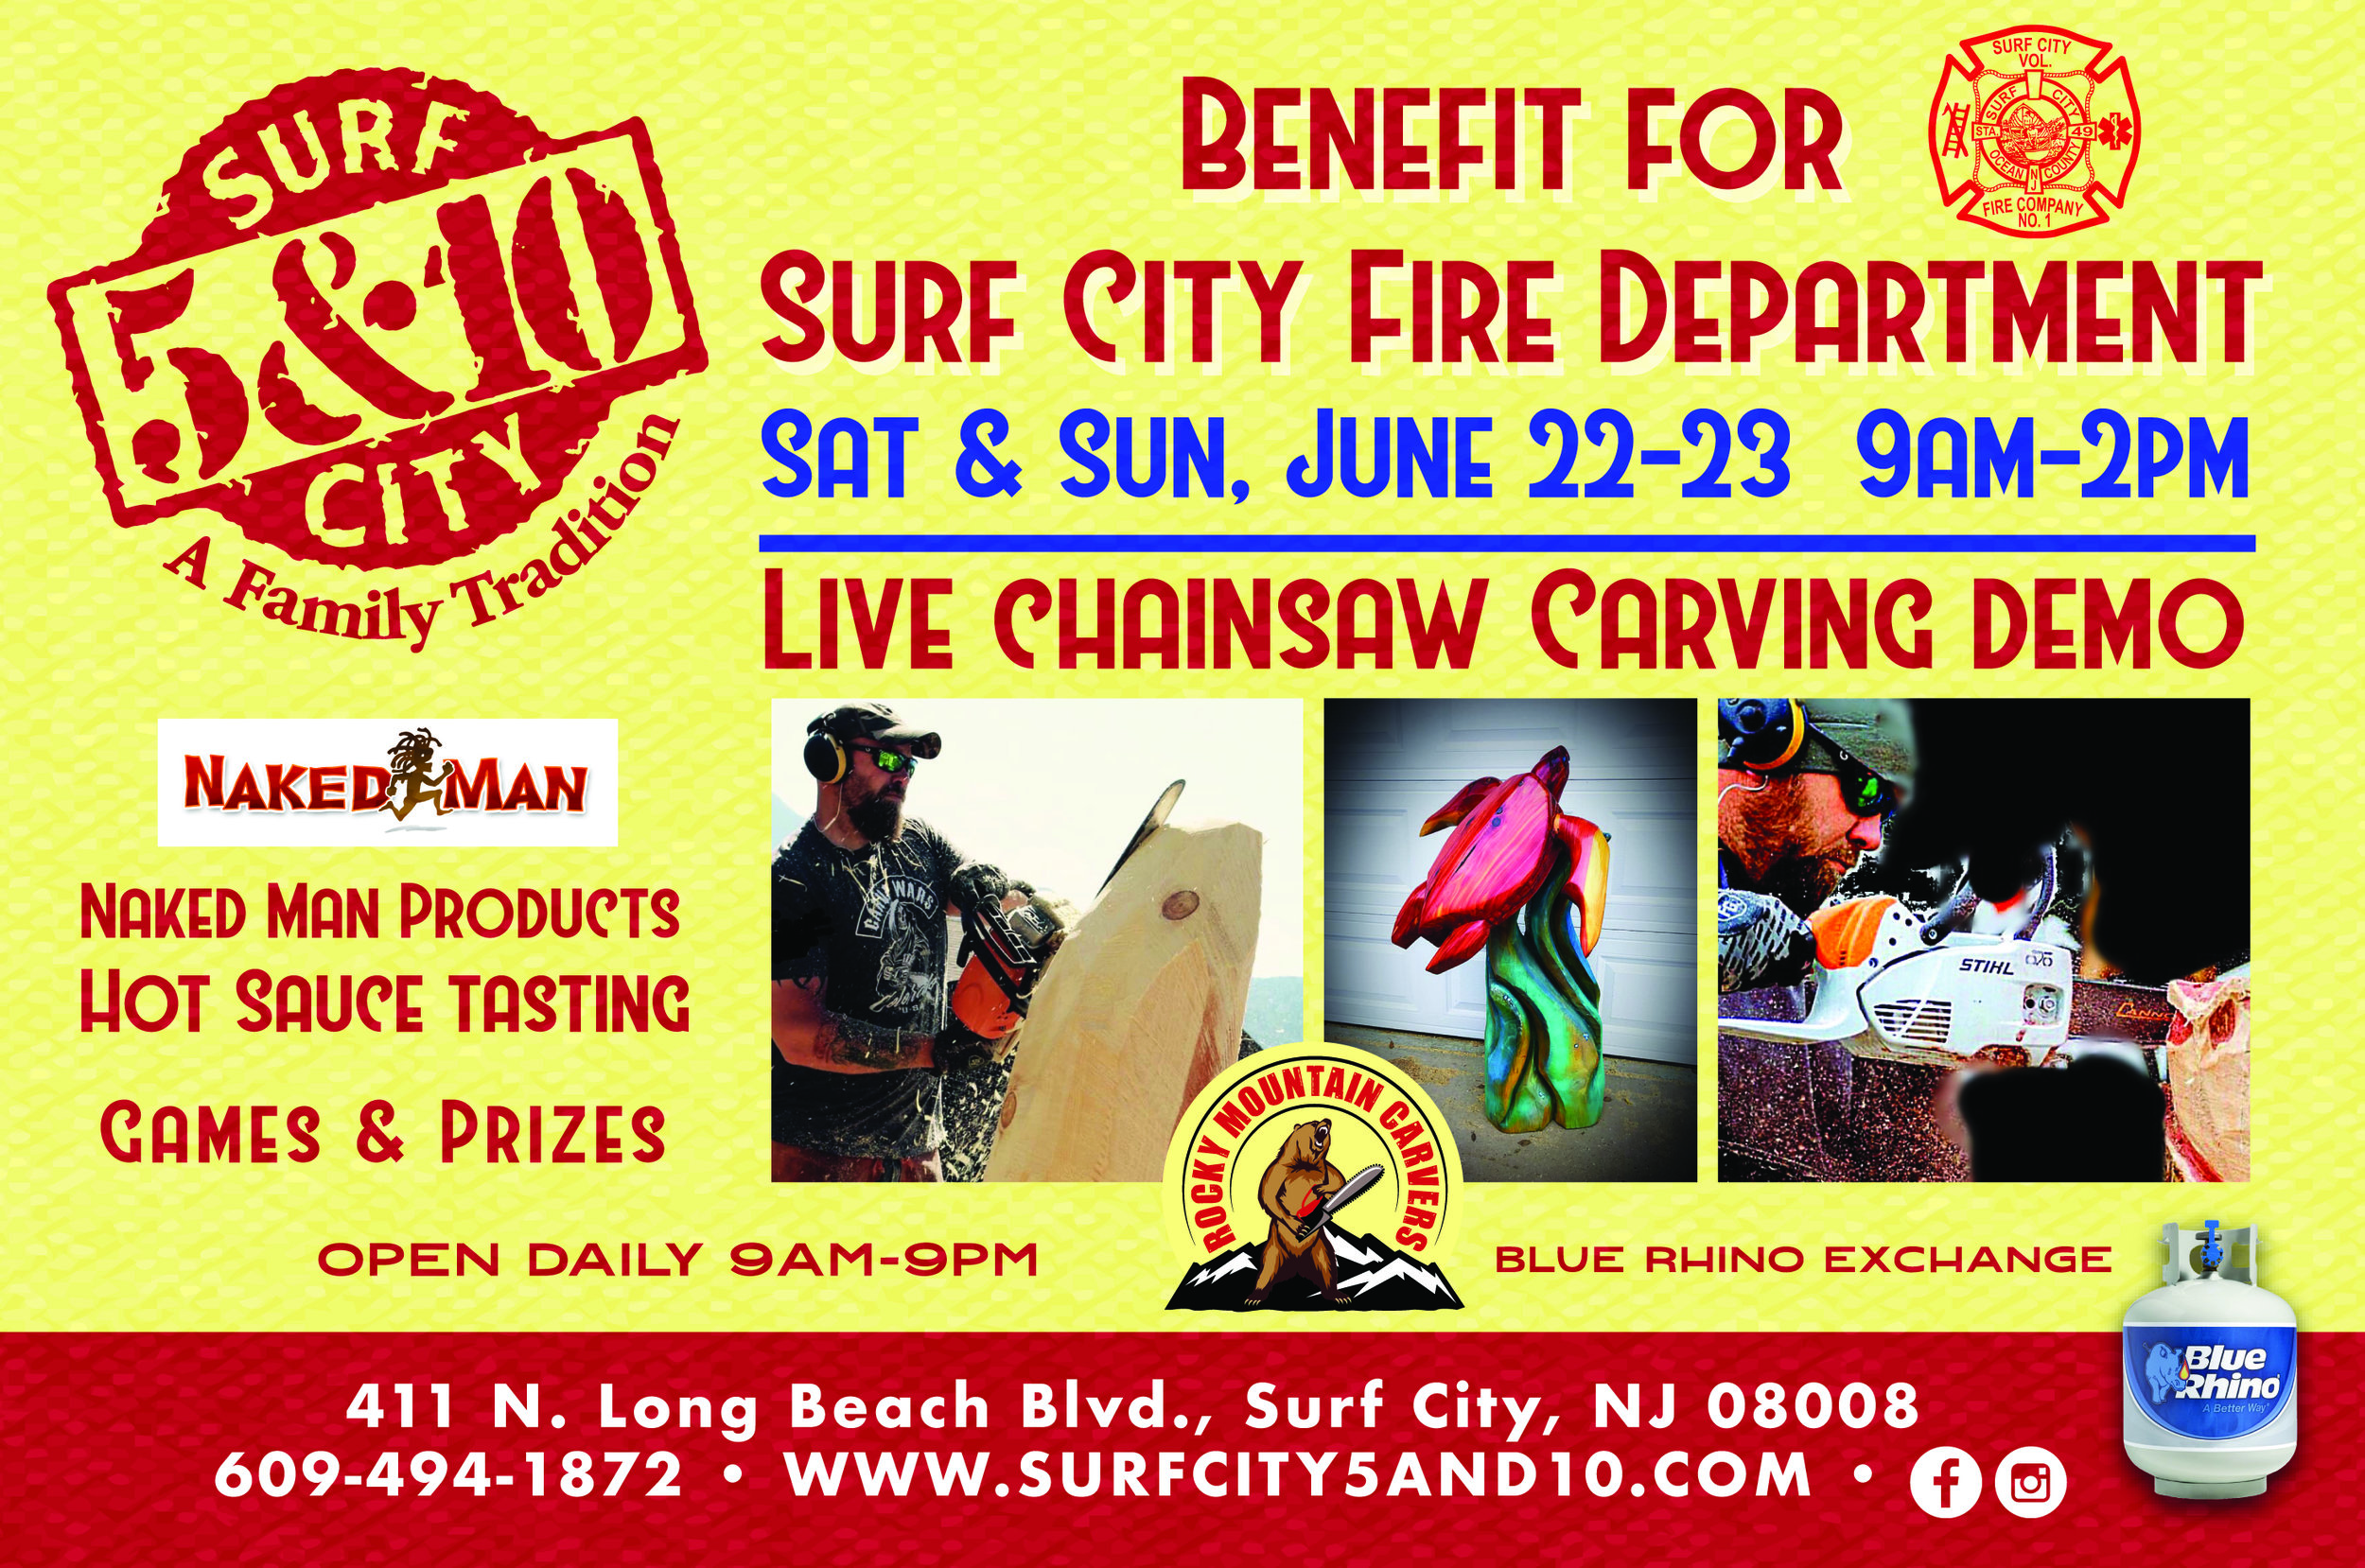 Benefit for Surf City Fire Department — Surf City 5&10